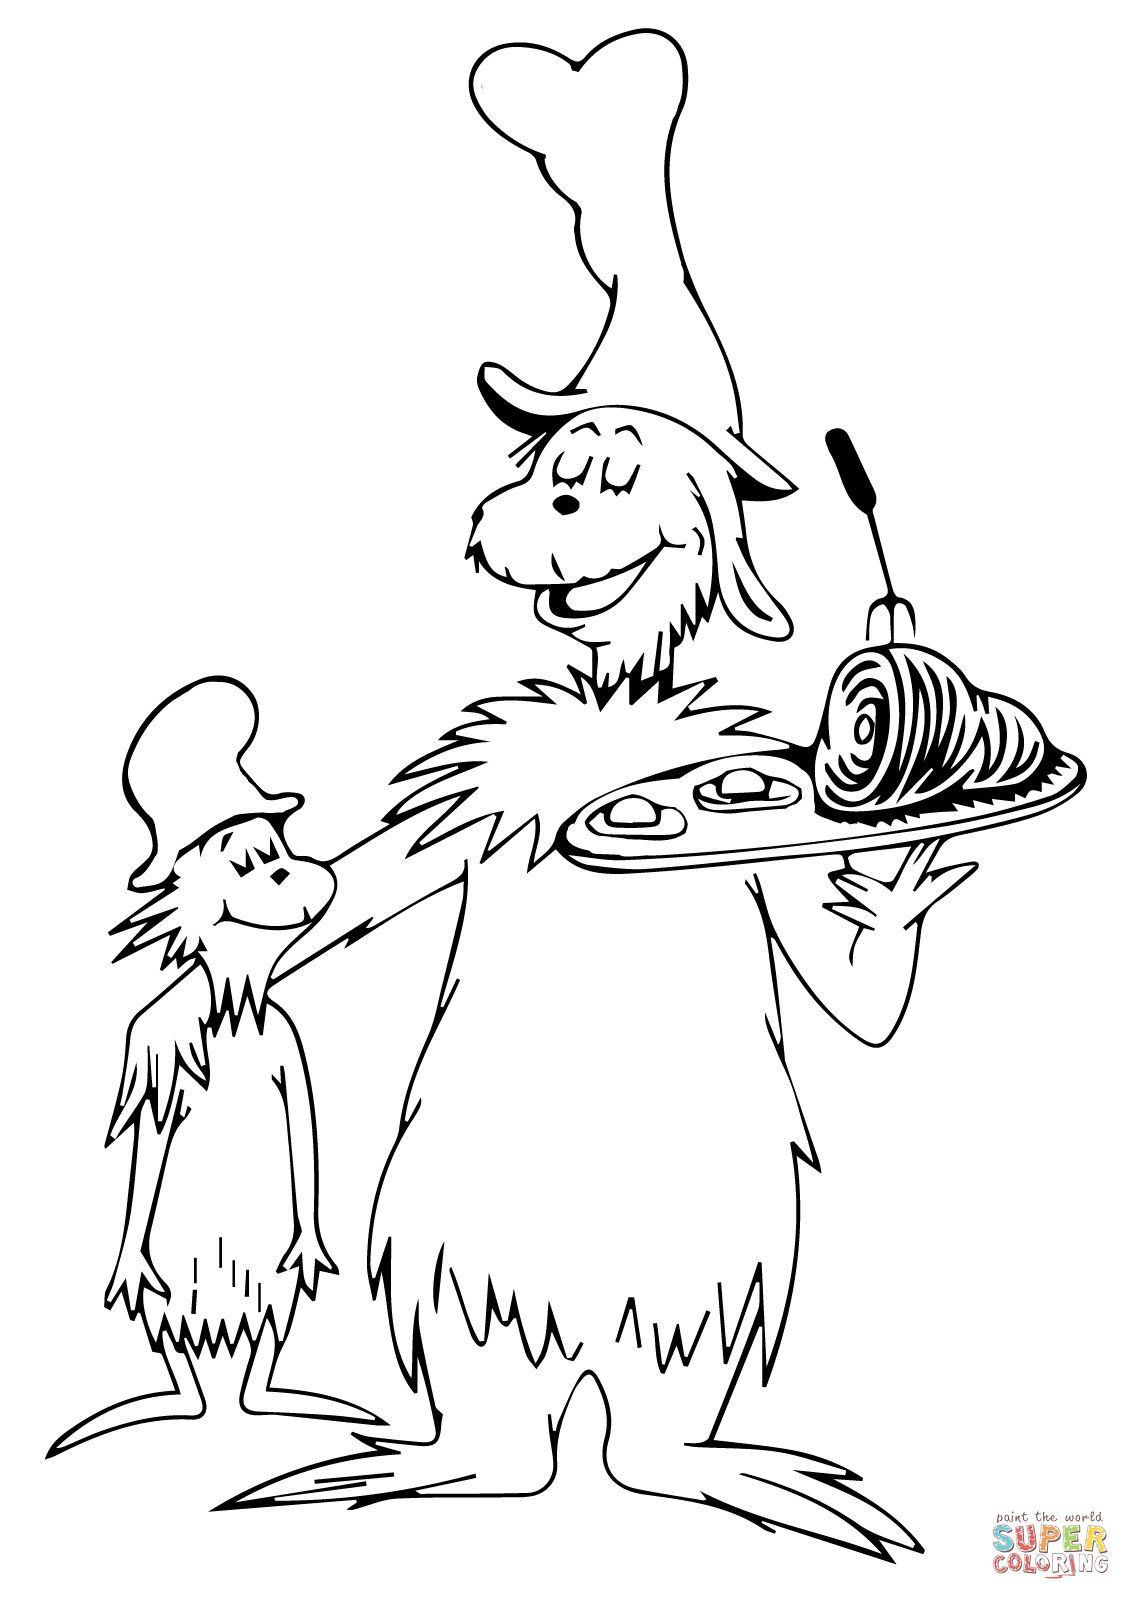 Green Eggs And Ham Coloring Page Dr Seuss Coloring Pages Dr Seuss Coloring Sheet Seuss Crafts